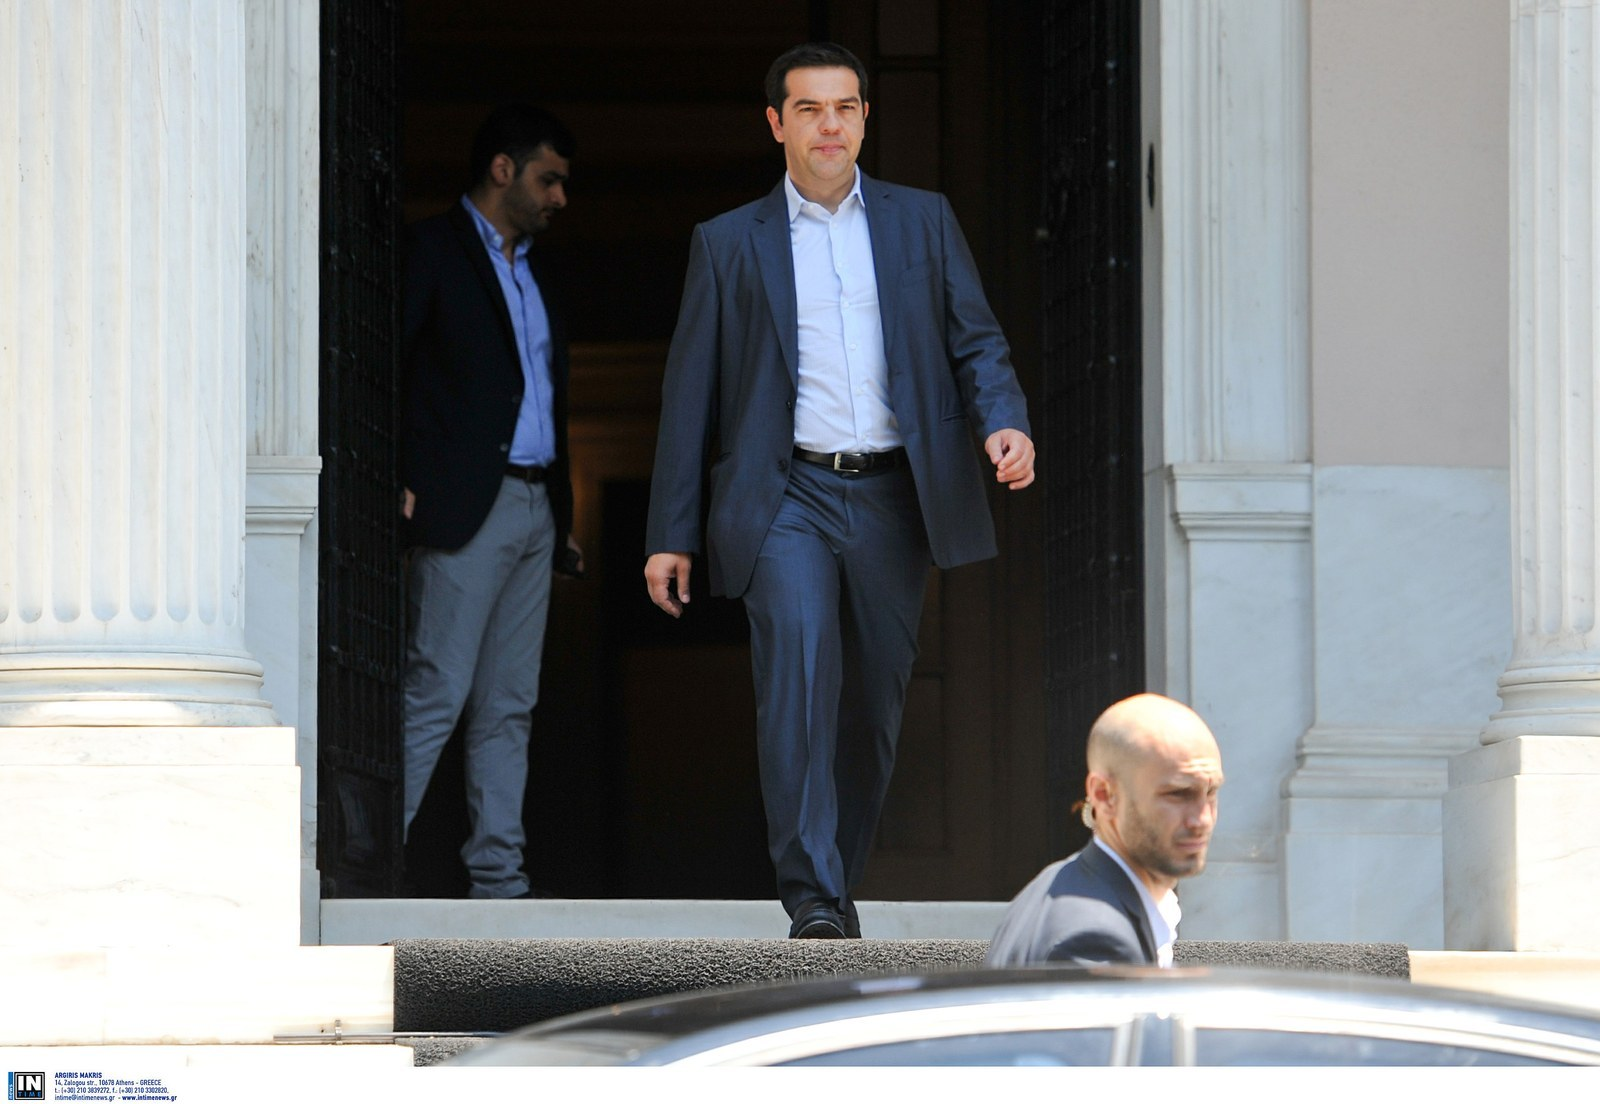 Greece Submits 11th-Hour Bailout Request To Avert Financial Collapse